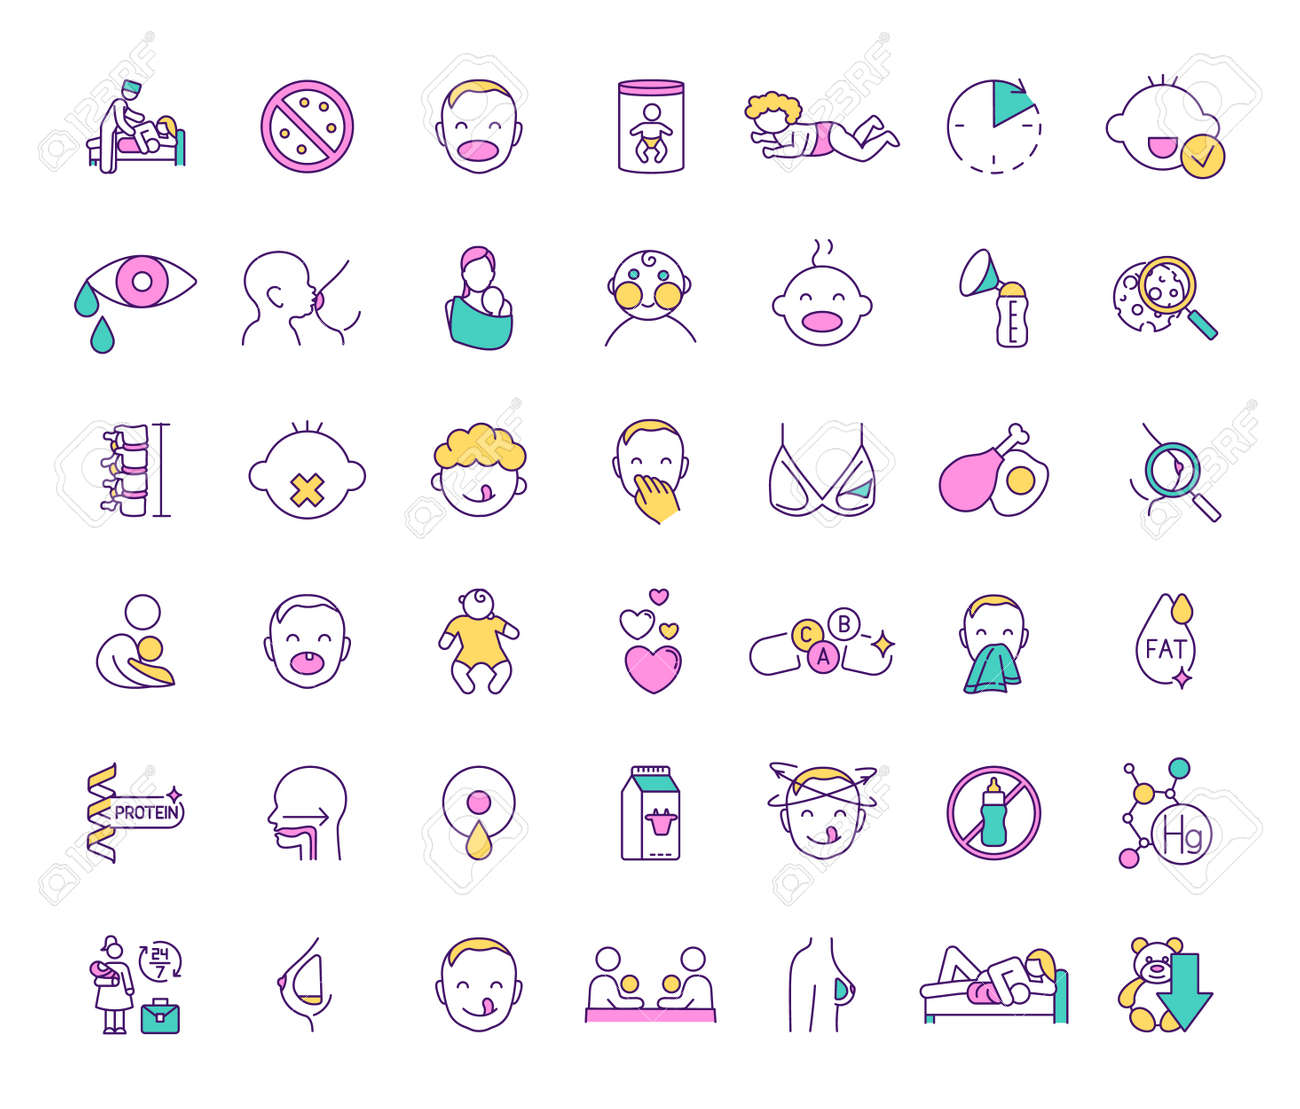 Breastfeeding and baby food RGB color icons set. Feeding method. Milestones. Prenatal education providing. Maternal bond. Breastmilk substitutes. Baby cues. Infancy. Isolated vector illustrations - 166225201